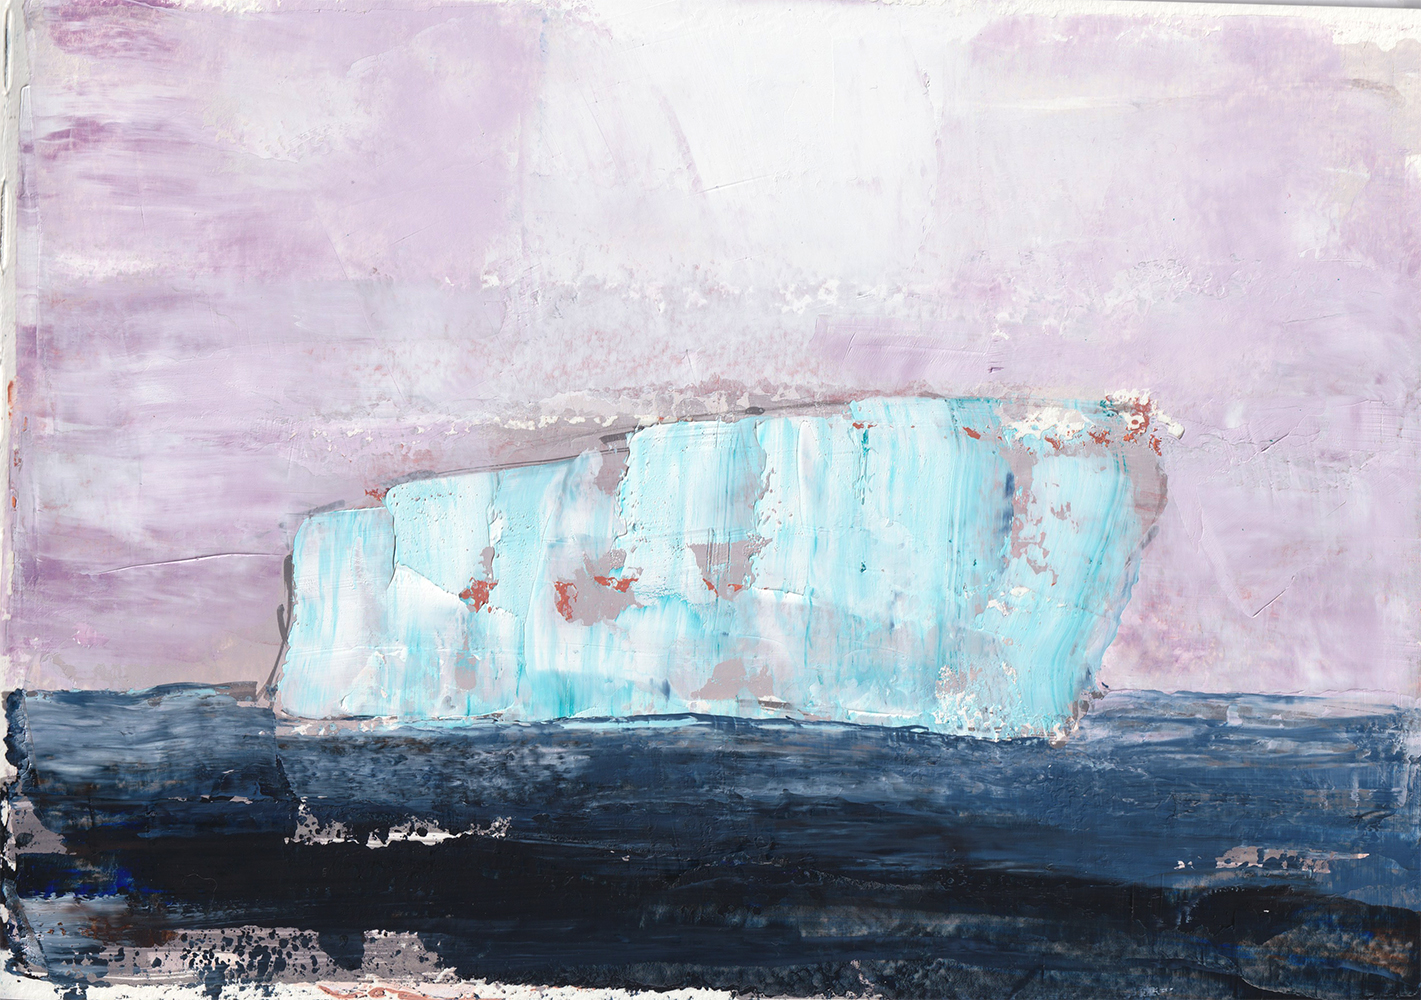 Antarctic Sketch 44 (Book 1) by Danielle Eubank, Oil on paper, 8.25x11.5 inches, 2019